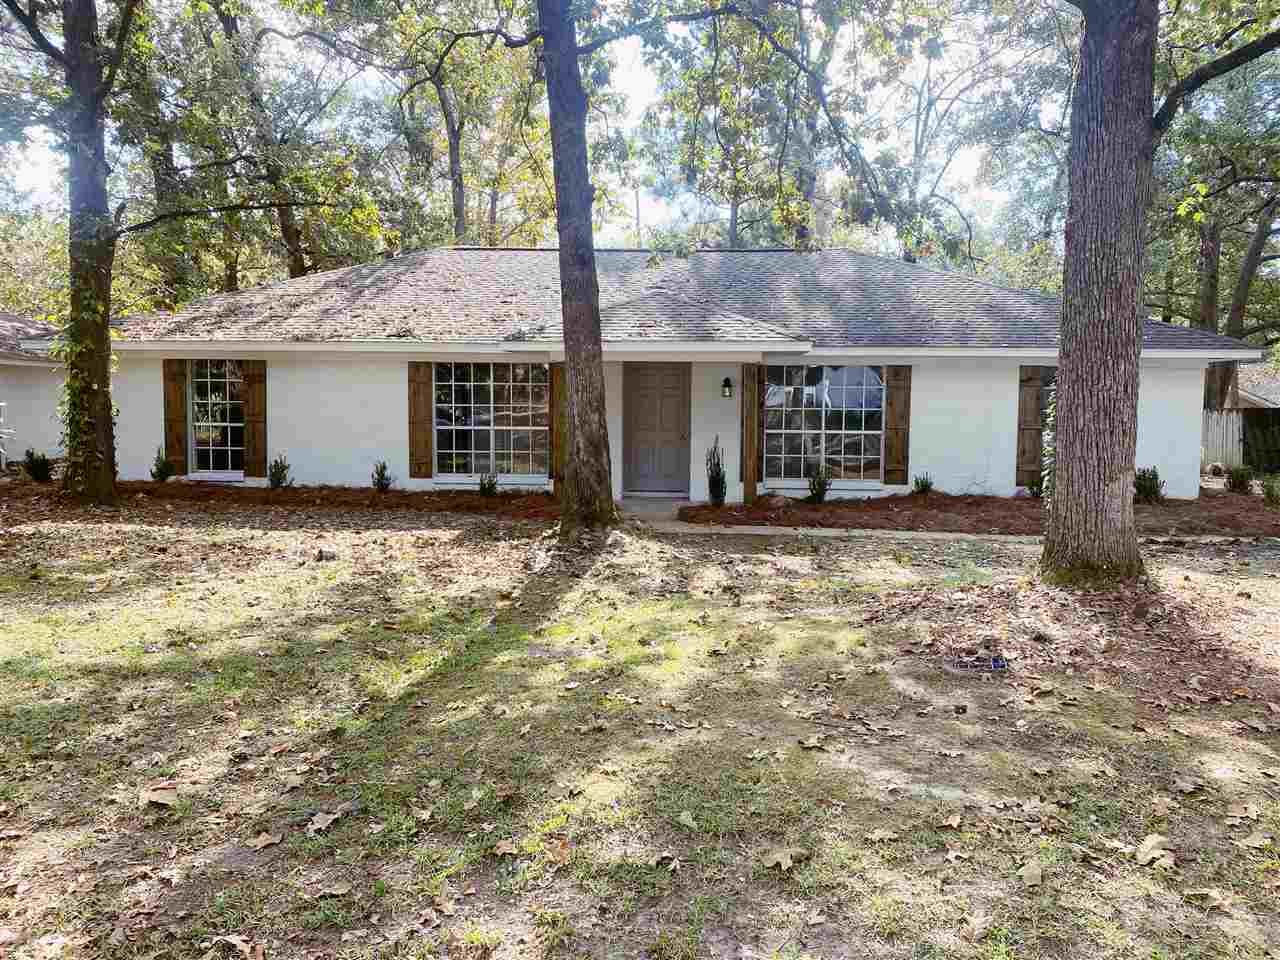 206 POPLAR DR, Brandon, MS 39047 - MLS#: 335554